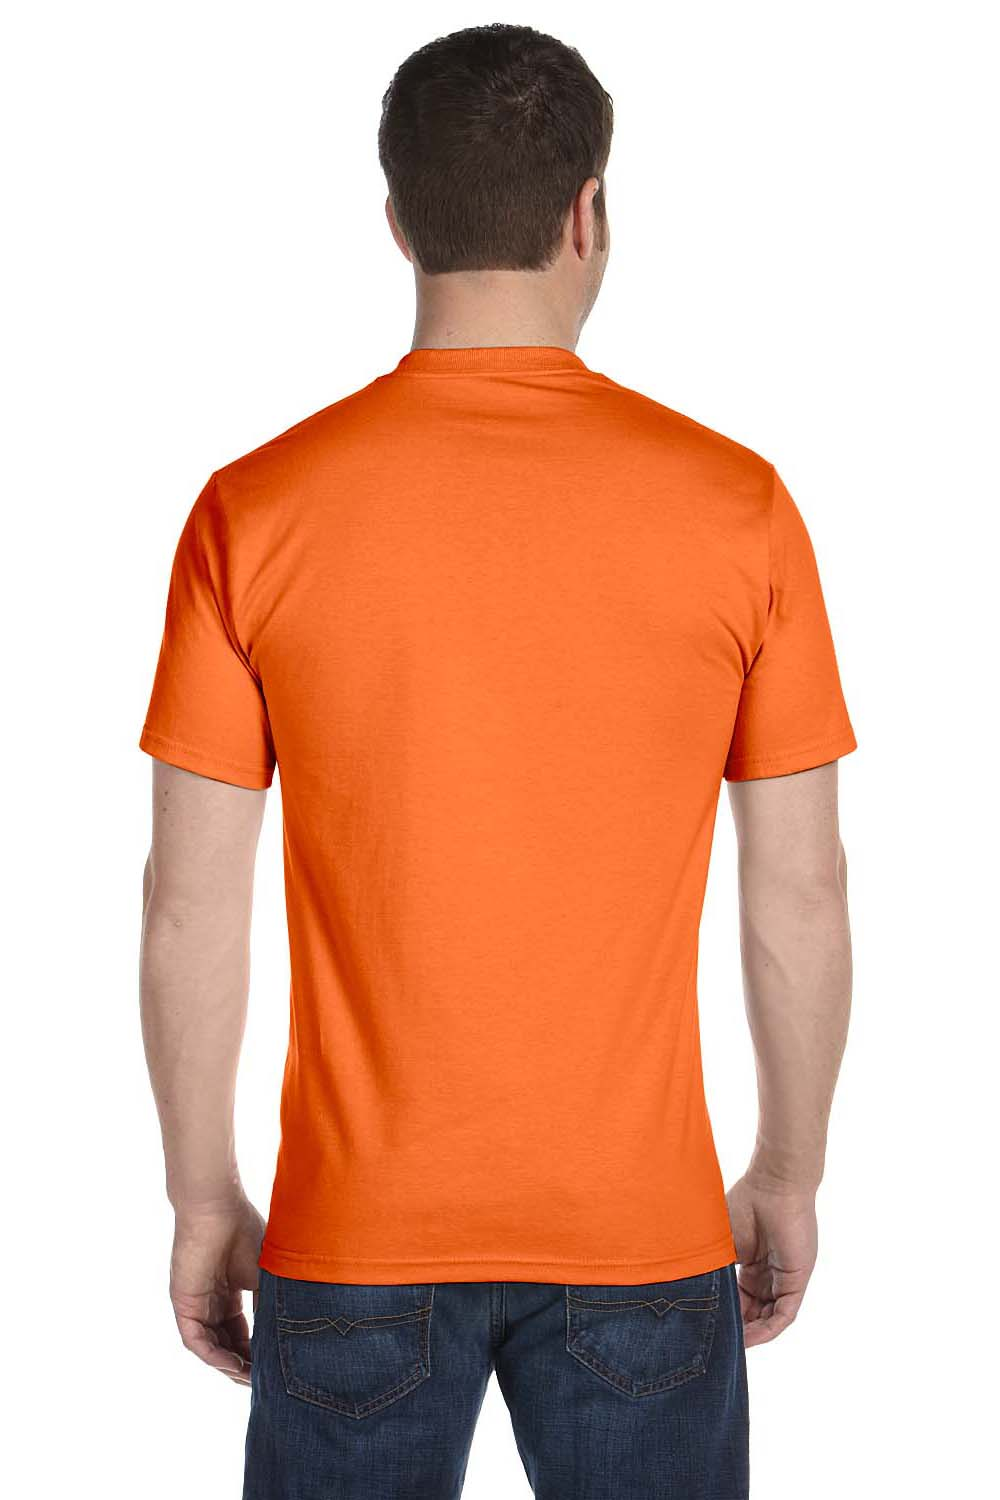 Hanes 5280 Mens ComfortSoft Short Sleeve Crewneck T-Shirt Orange Back